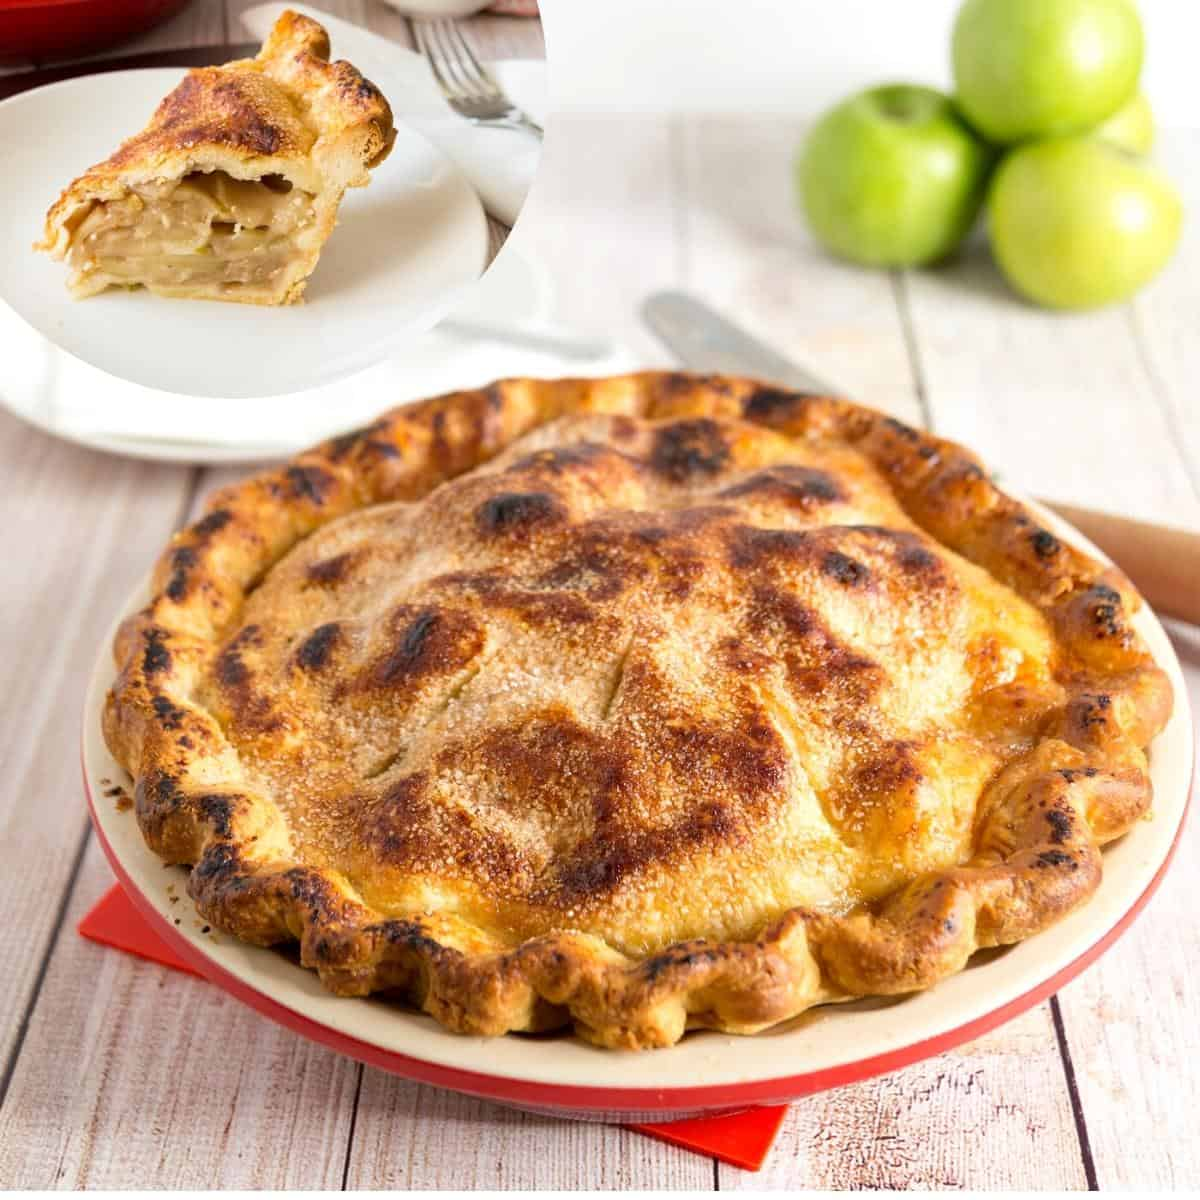 How to make homemade pie with apples and a double pie crust